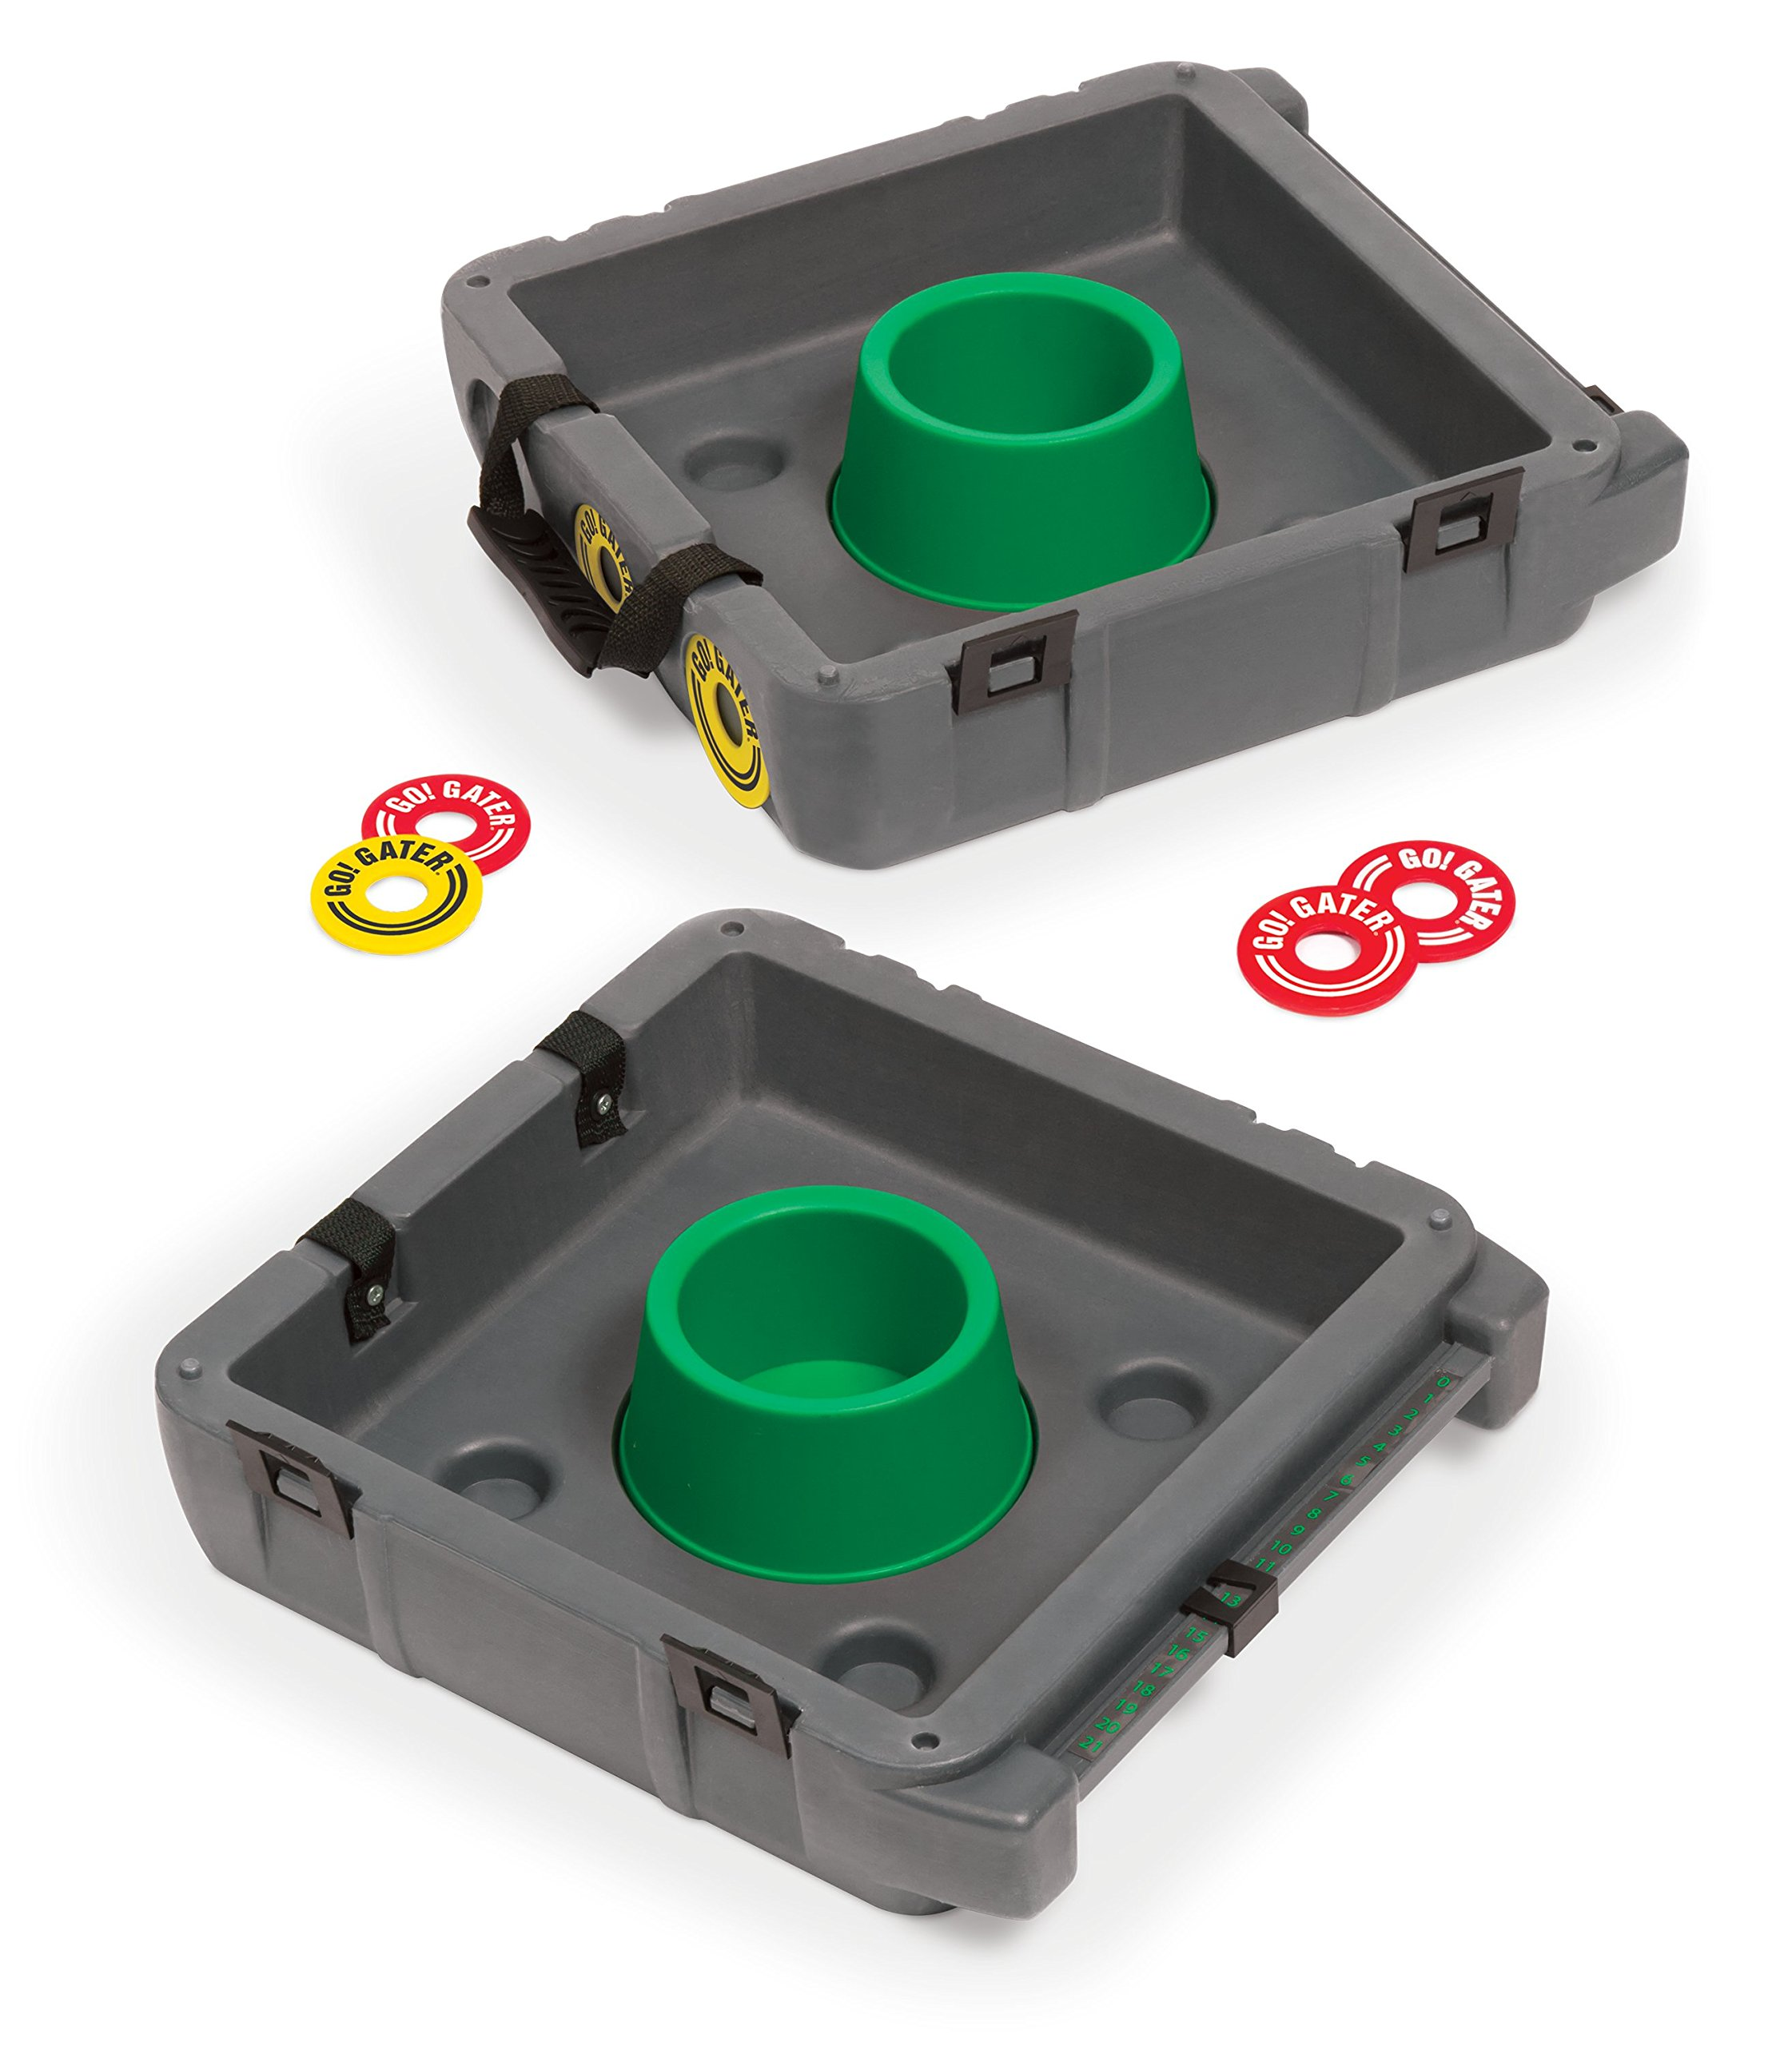 Go! Gater Washer Toss Set with Molded Case by EastPoint Sports (Image #1)